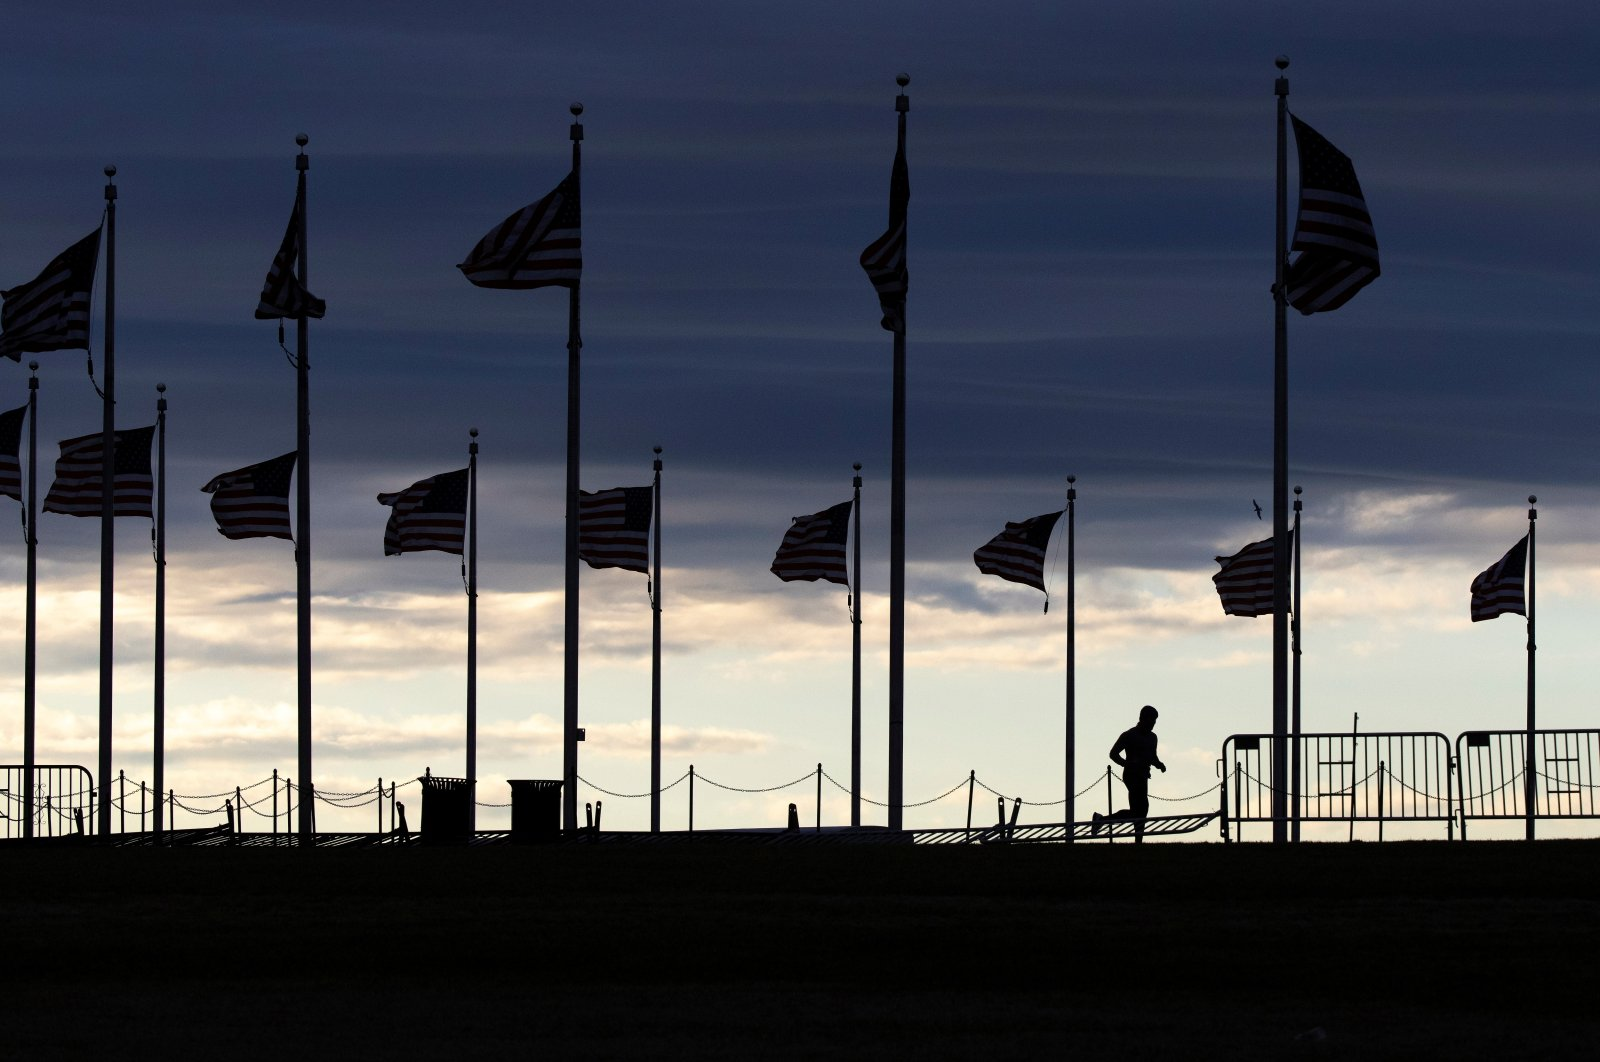 A pedestrian jogs around the Washington Monument at dusk in Washington, U.S., Feb. 16, 2021. (Reuters)